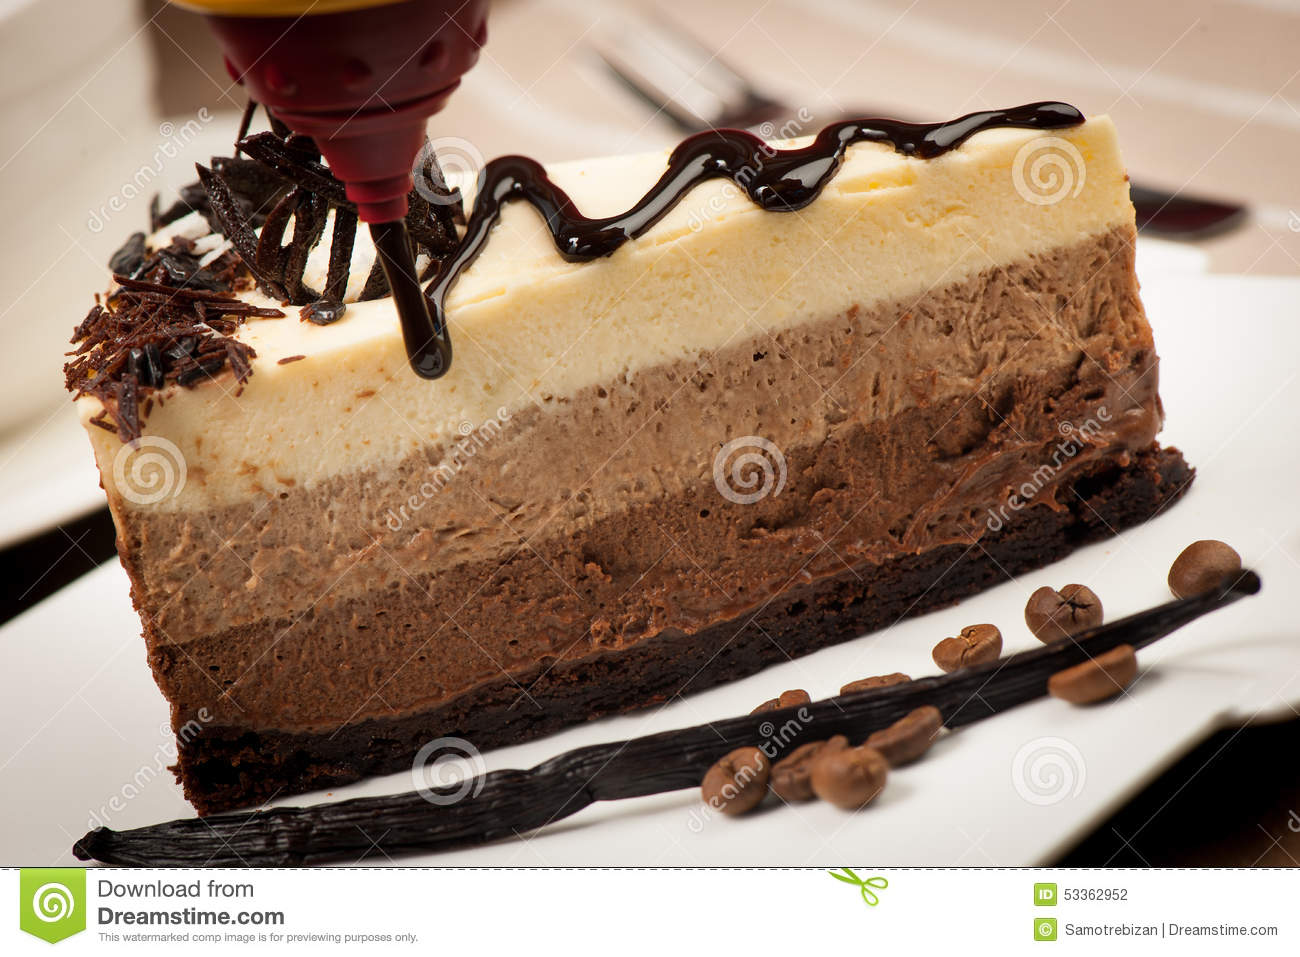 Vanilla And Chocolate Cake Images : Delicious Slice Of Chocolate Cake With Syrup And Vanilla ...